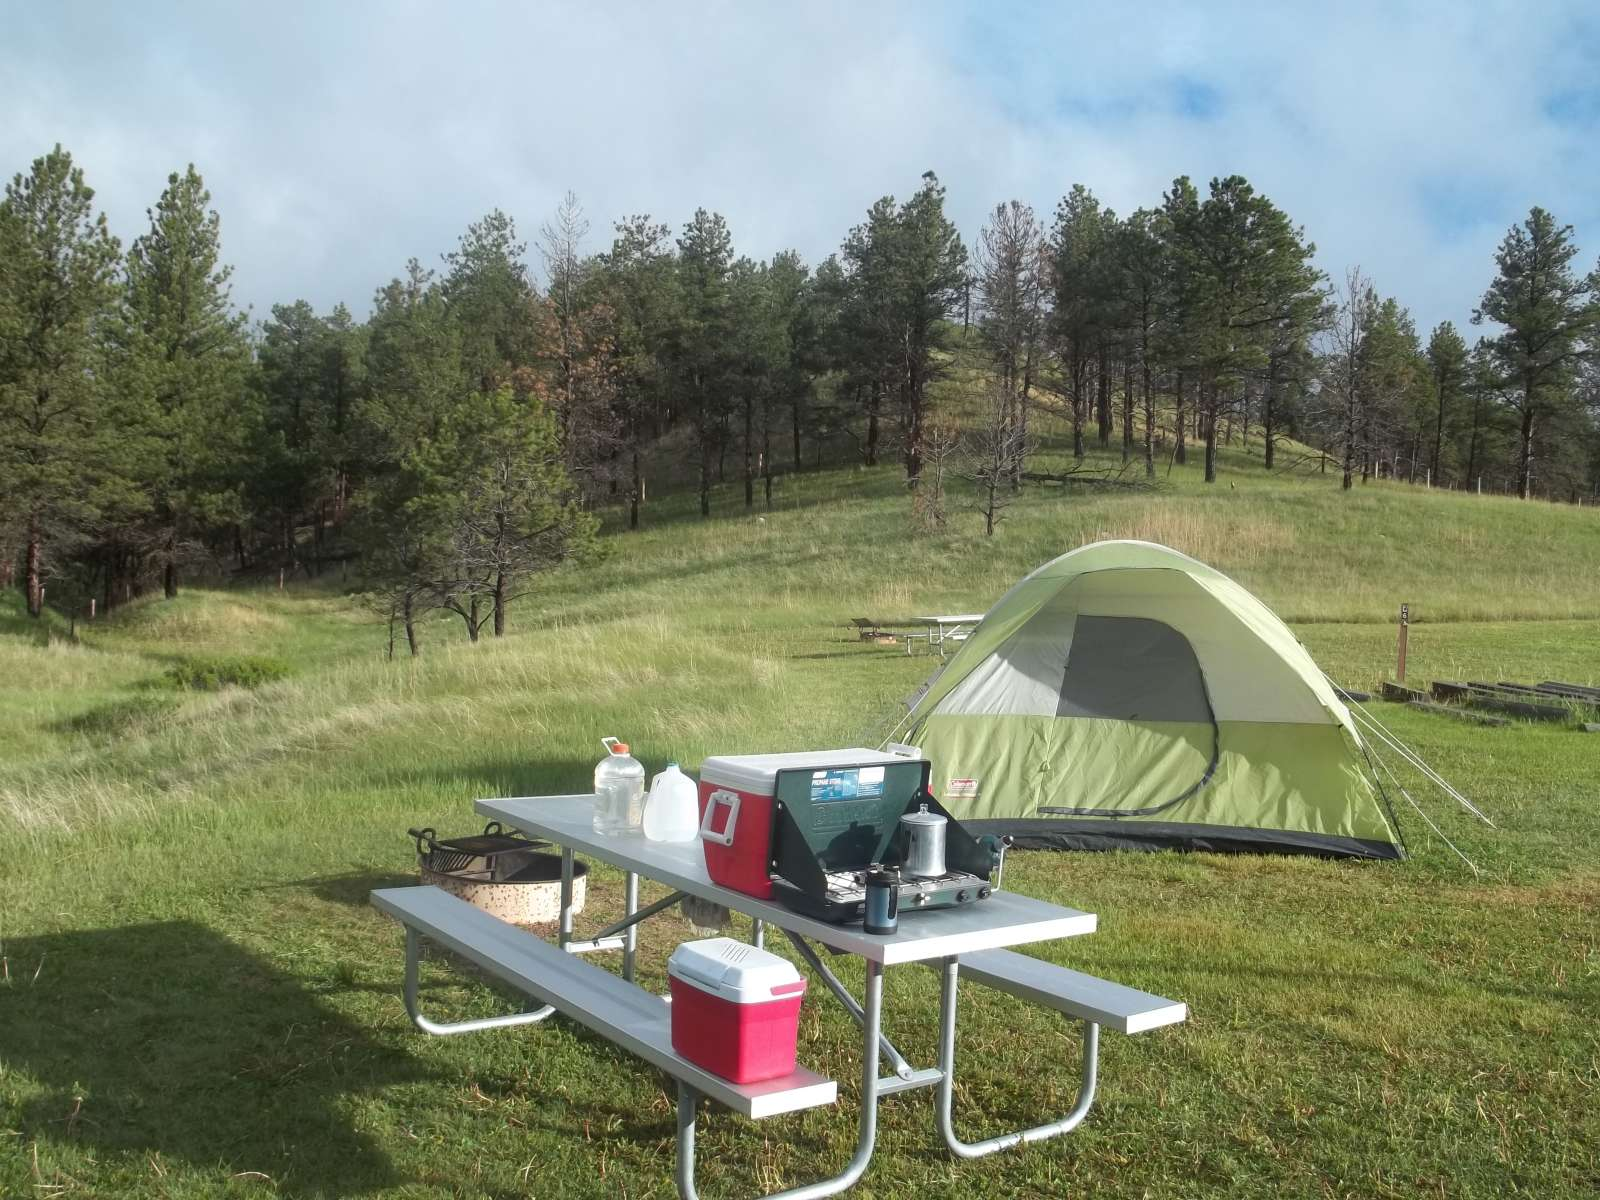 ... Andy D.'s photo at Elk Mountain Campground ...